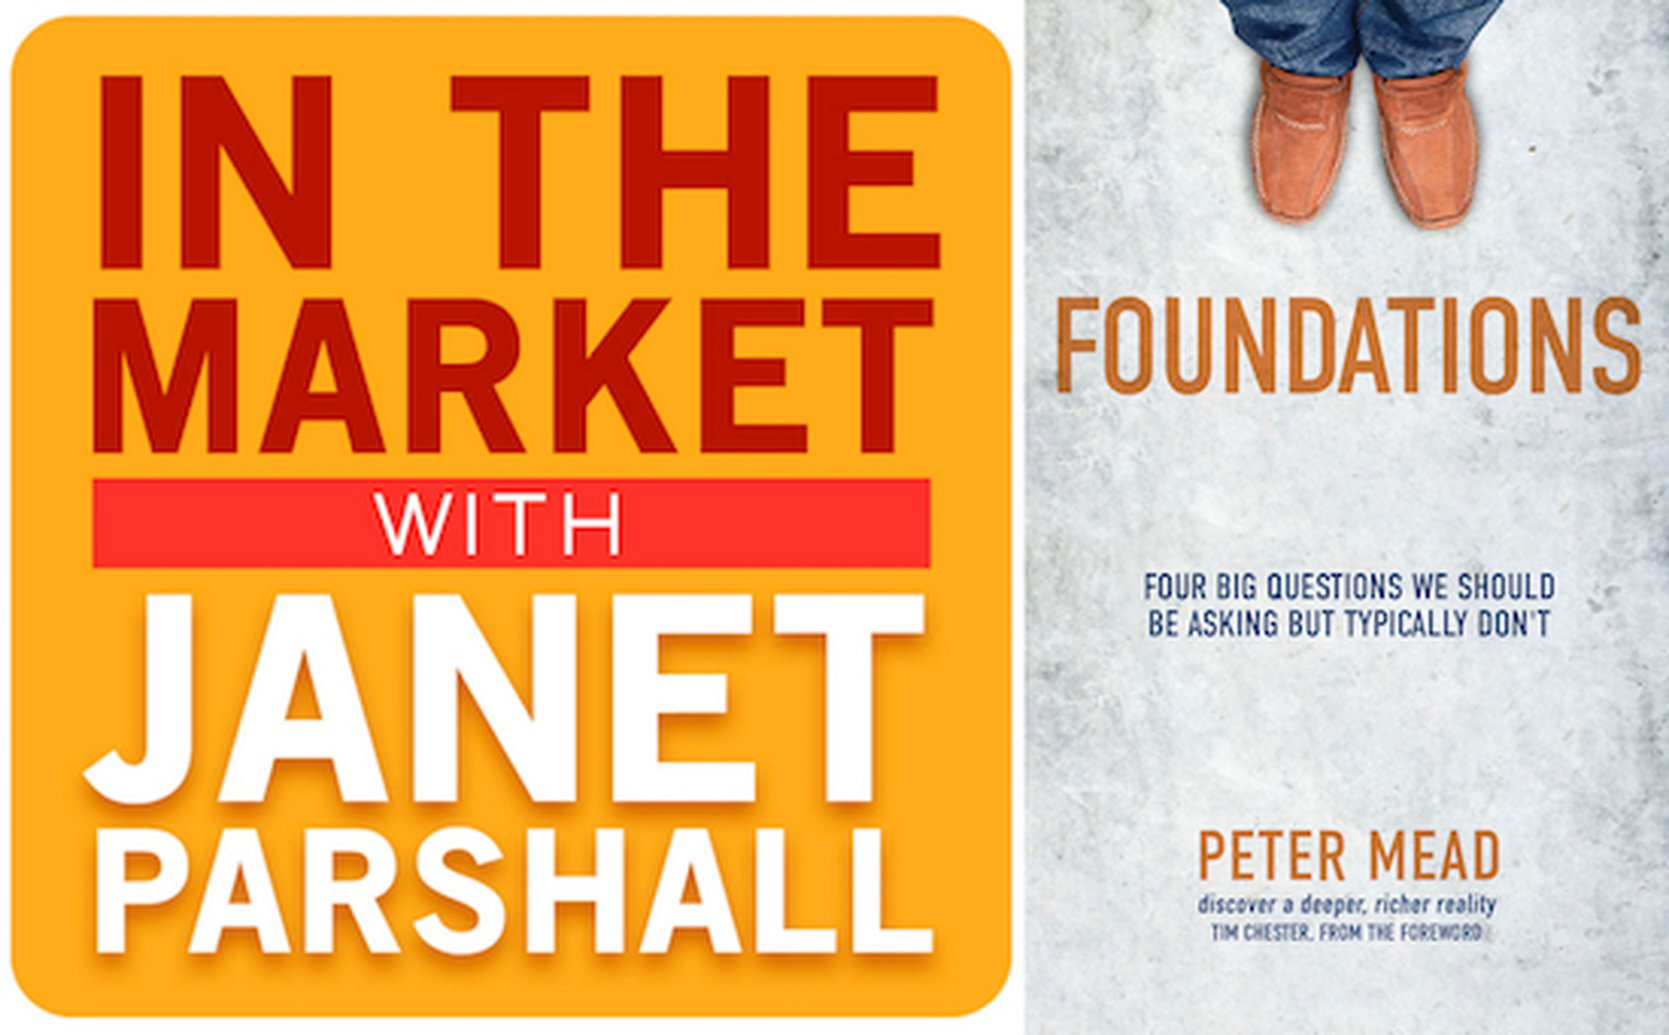 Peter Mead Talks About the 4 Big Questions Christians Should Be Asking But Typically Don't on In the Market with Janet Parshall